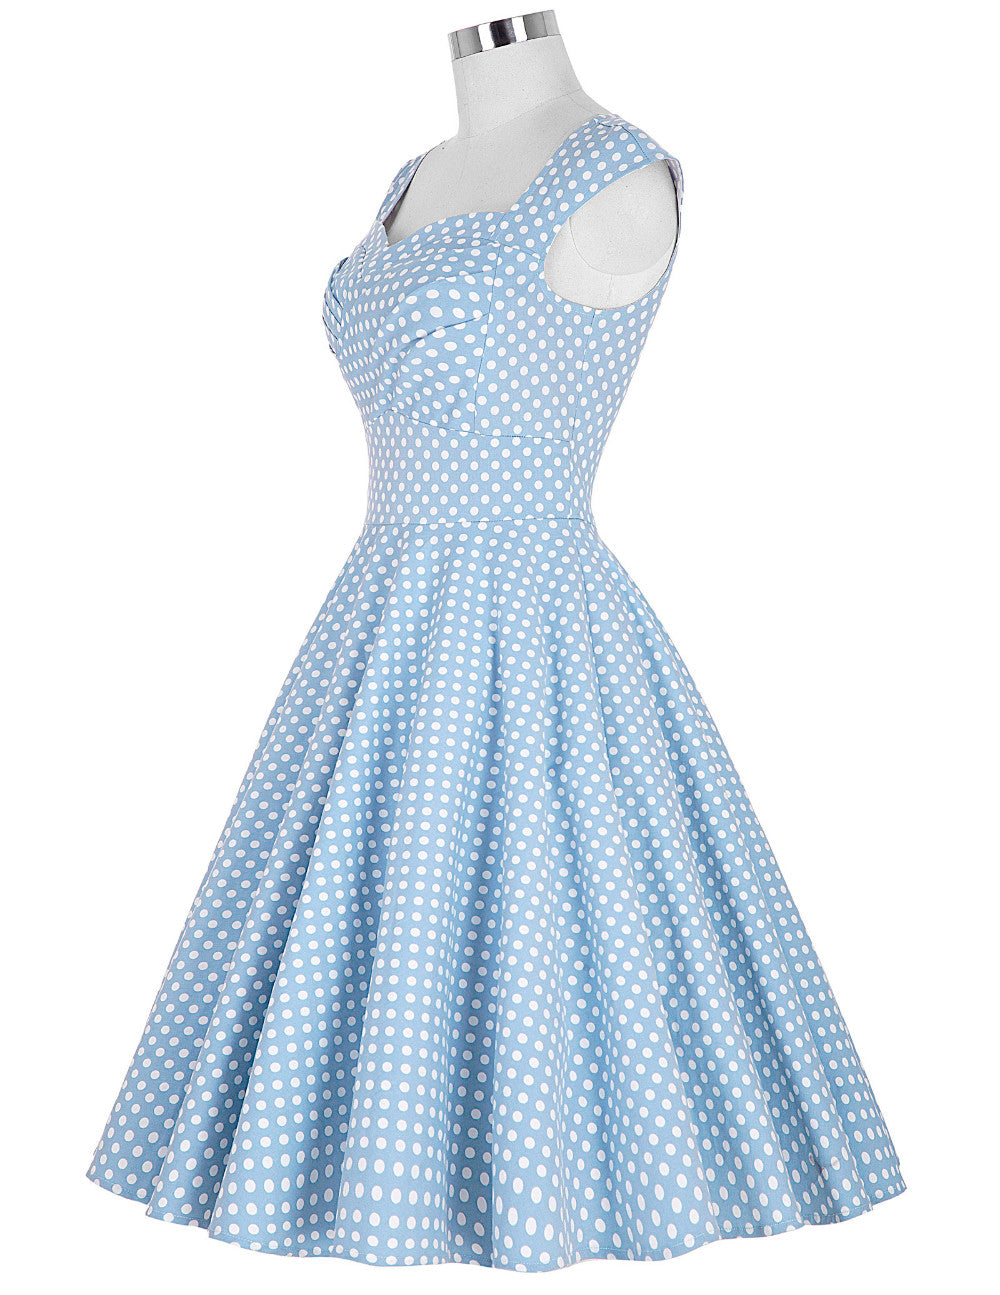 Now on Sale the Belle Dress in Light Blue with White Polka Dots by Ponyboy Vintage Clothing!